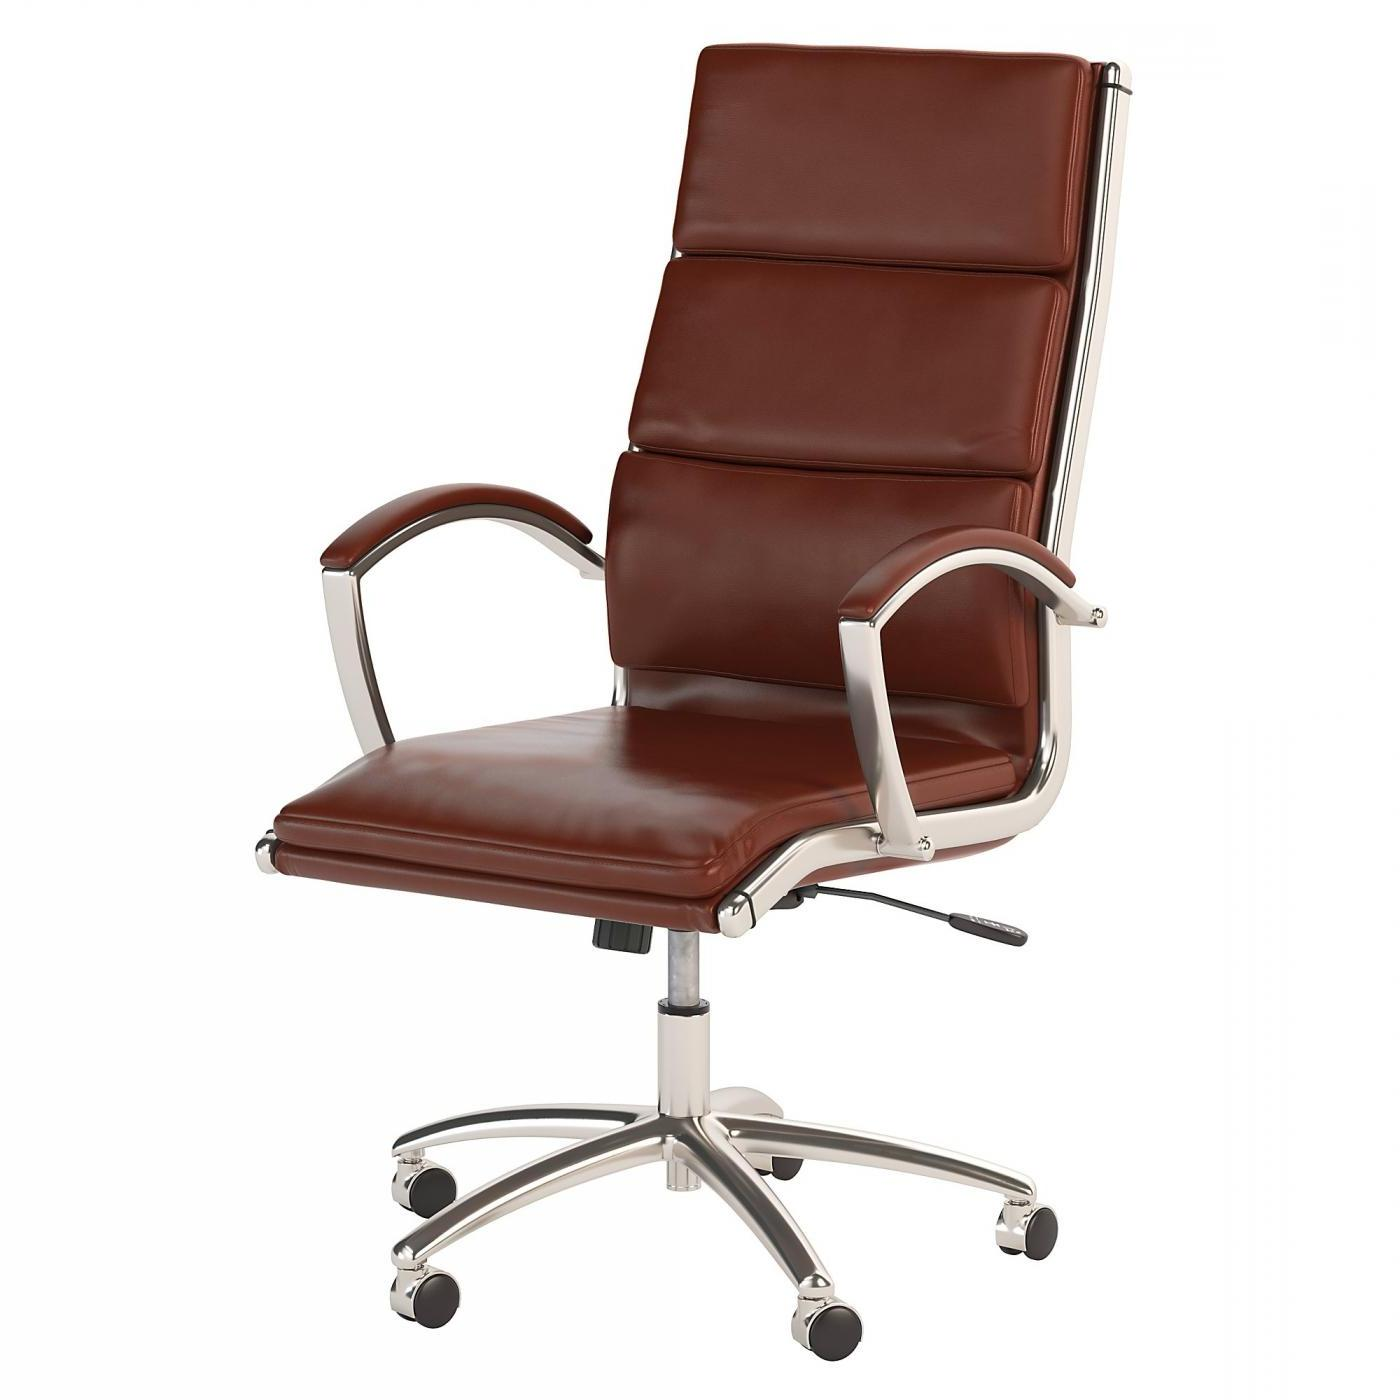 <font color=#c60><b>BUSH BUSINESS FURNITURE MODELO HIGH BACK LEATHER EXECUTIVE OFFICE CHAIR #EH-CH1701CSL-03. FREE SHIPPING:</font></b> </font></b>